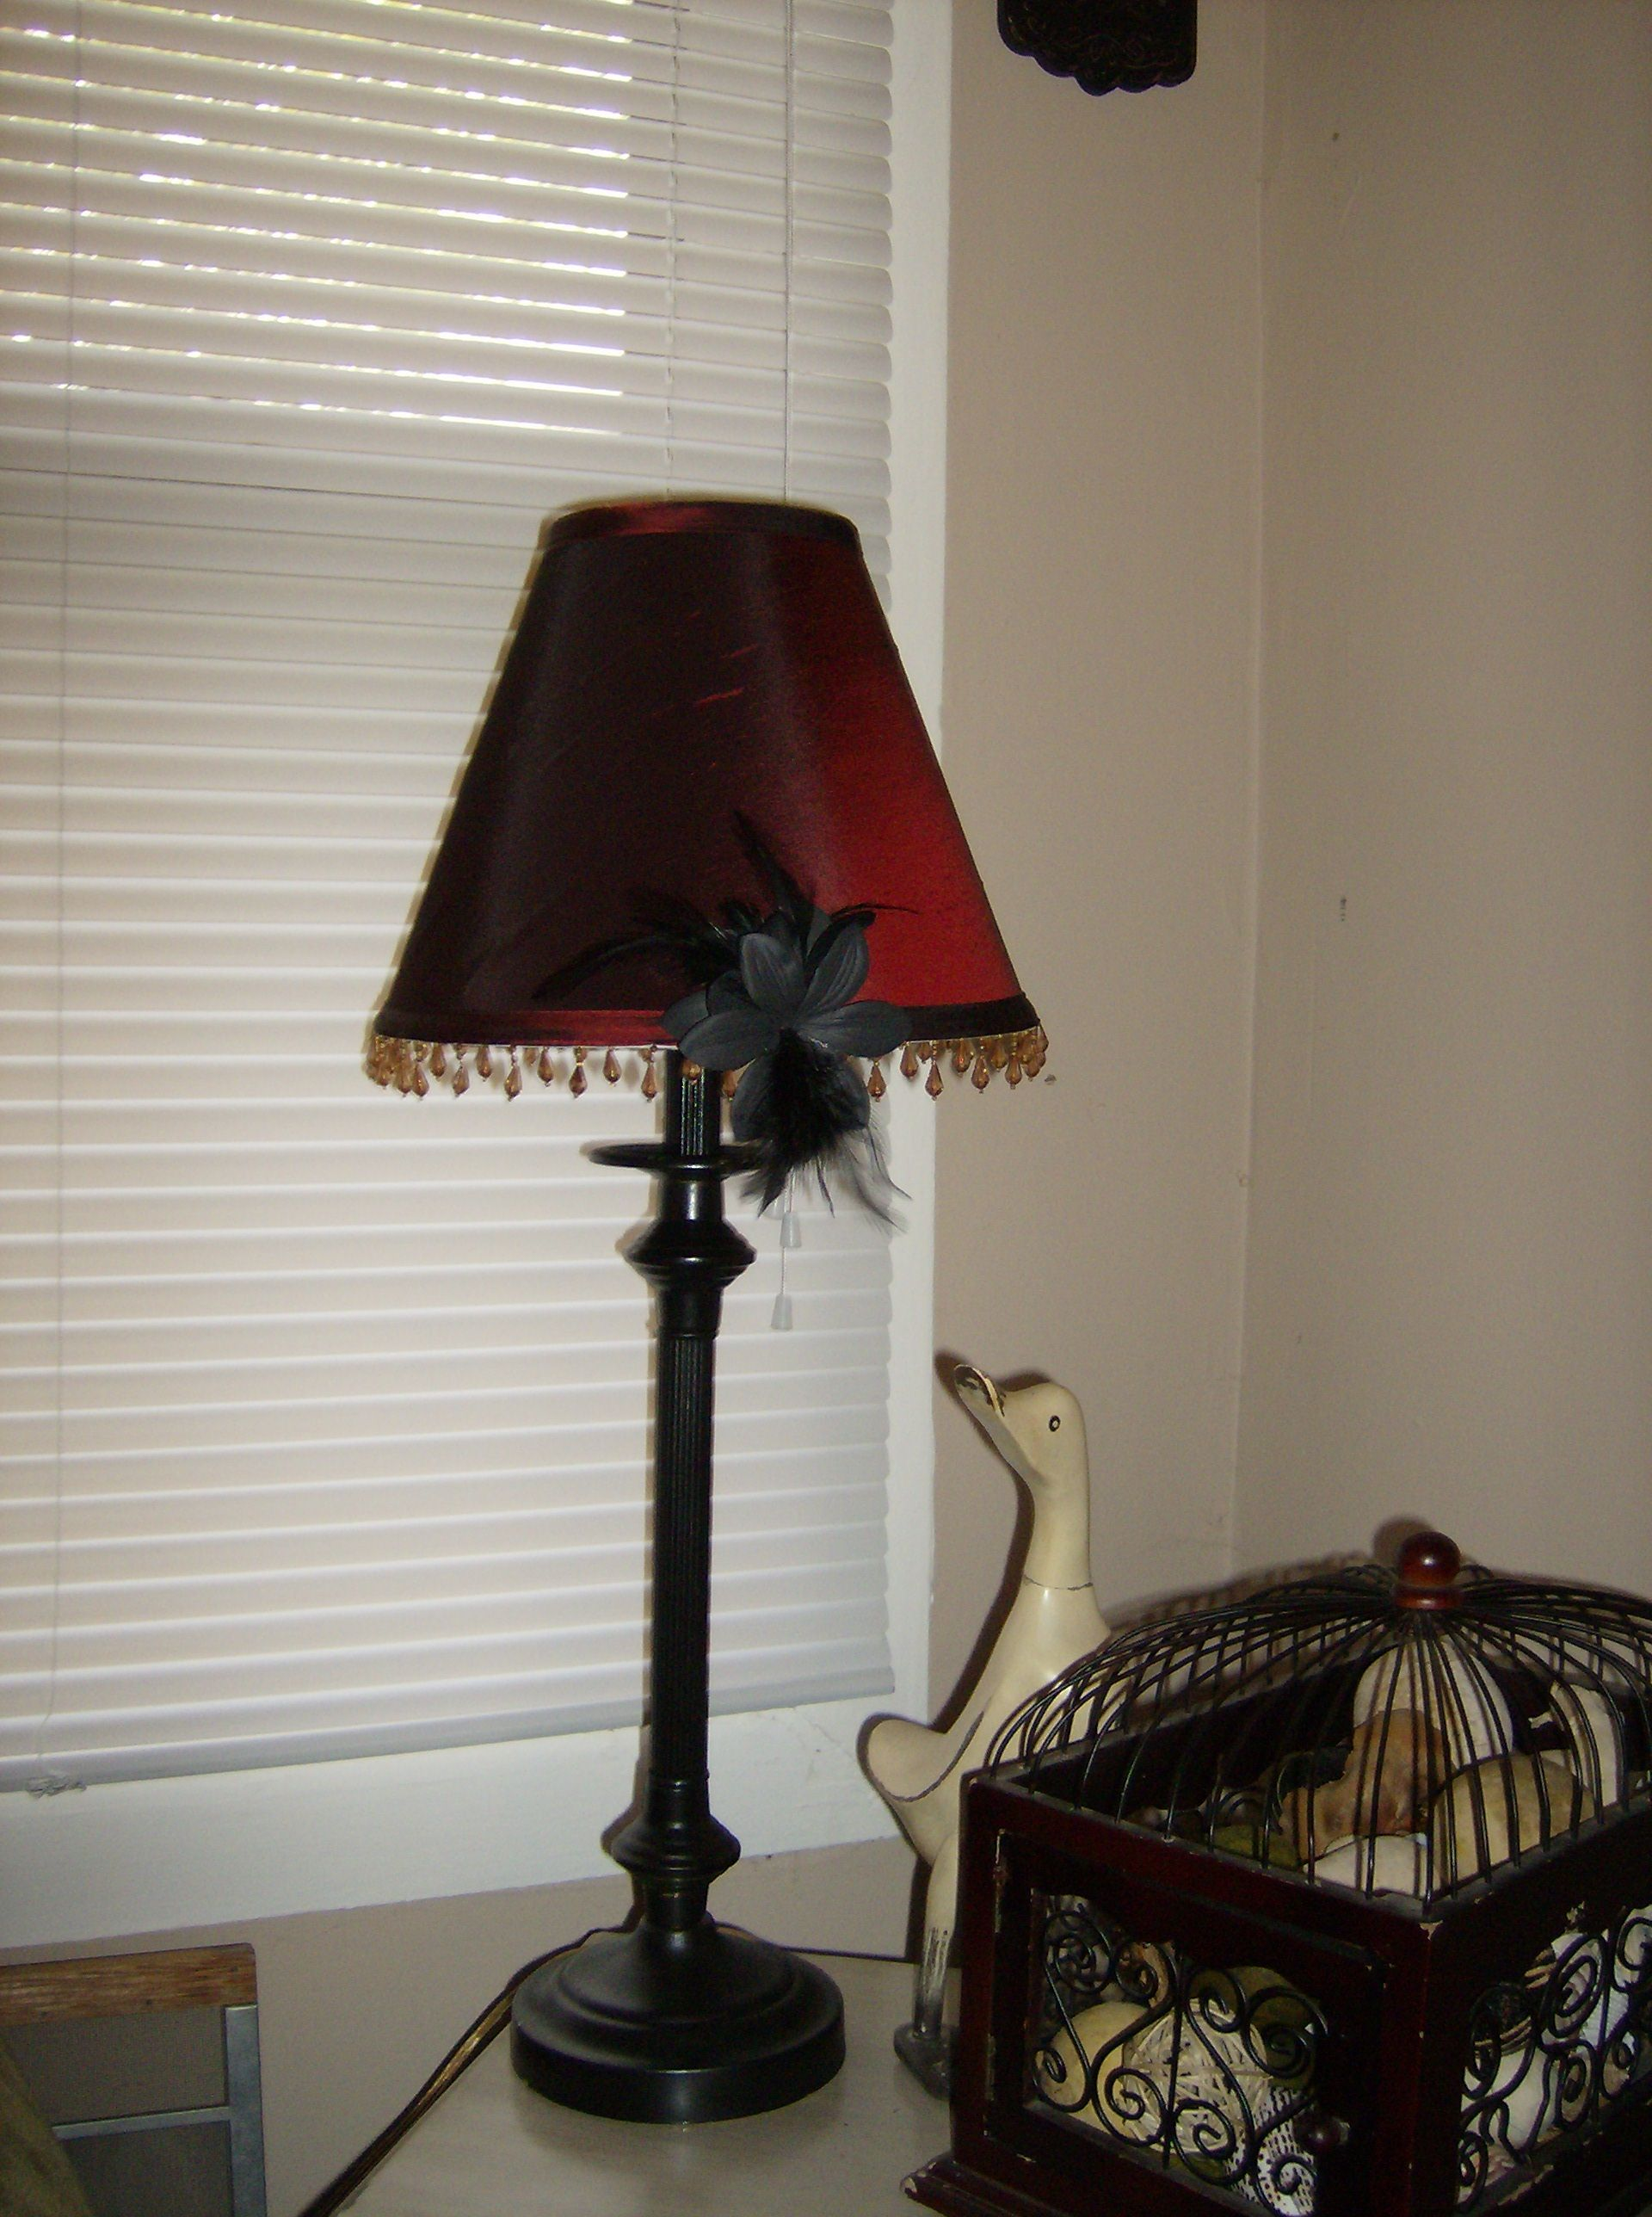 Hobby Lobby Lamp Shades Repurposed Lamp Shade Ala Hobby Lobby Projects  Pinterest